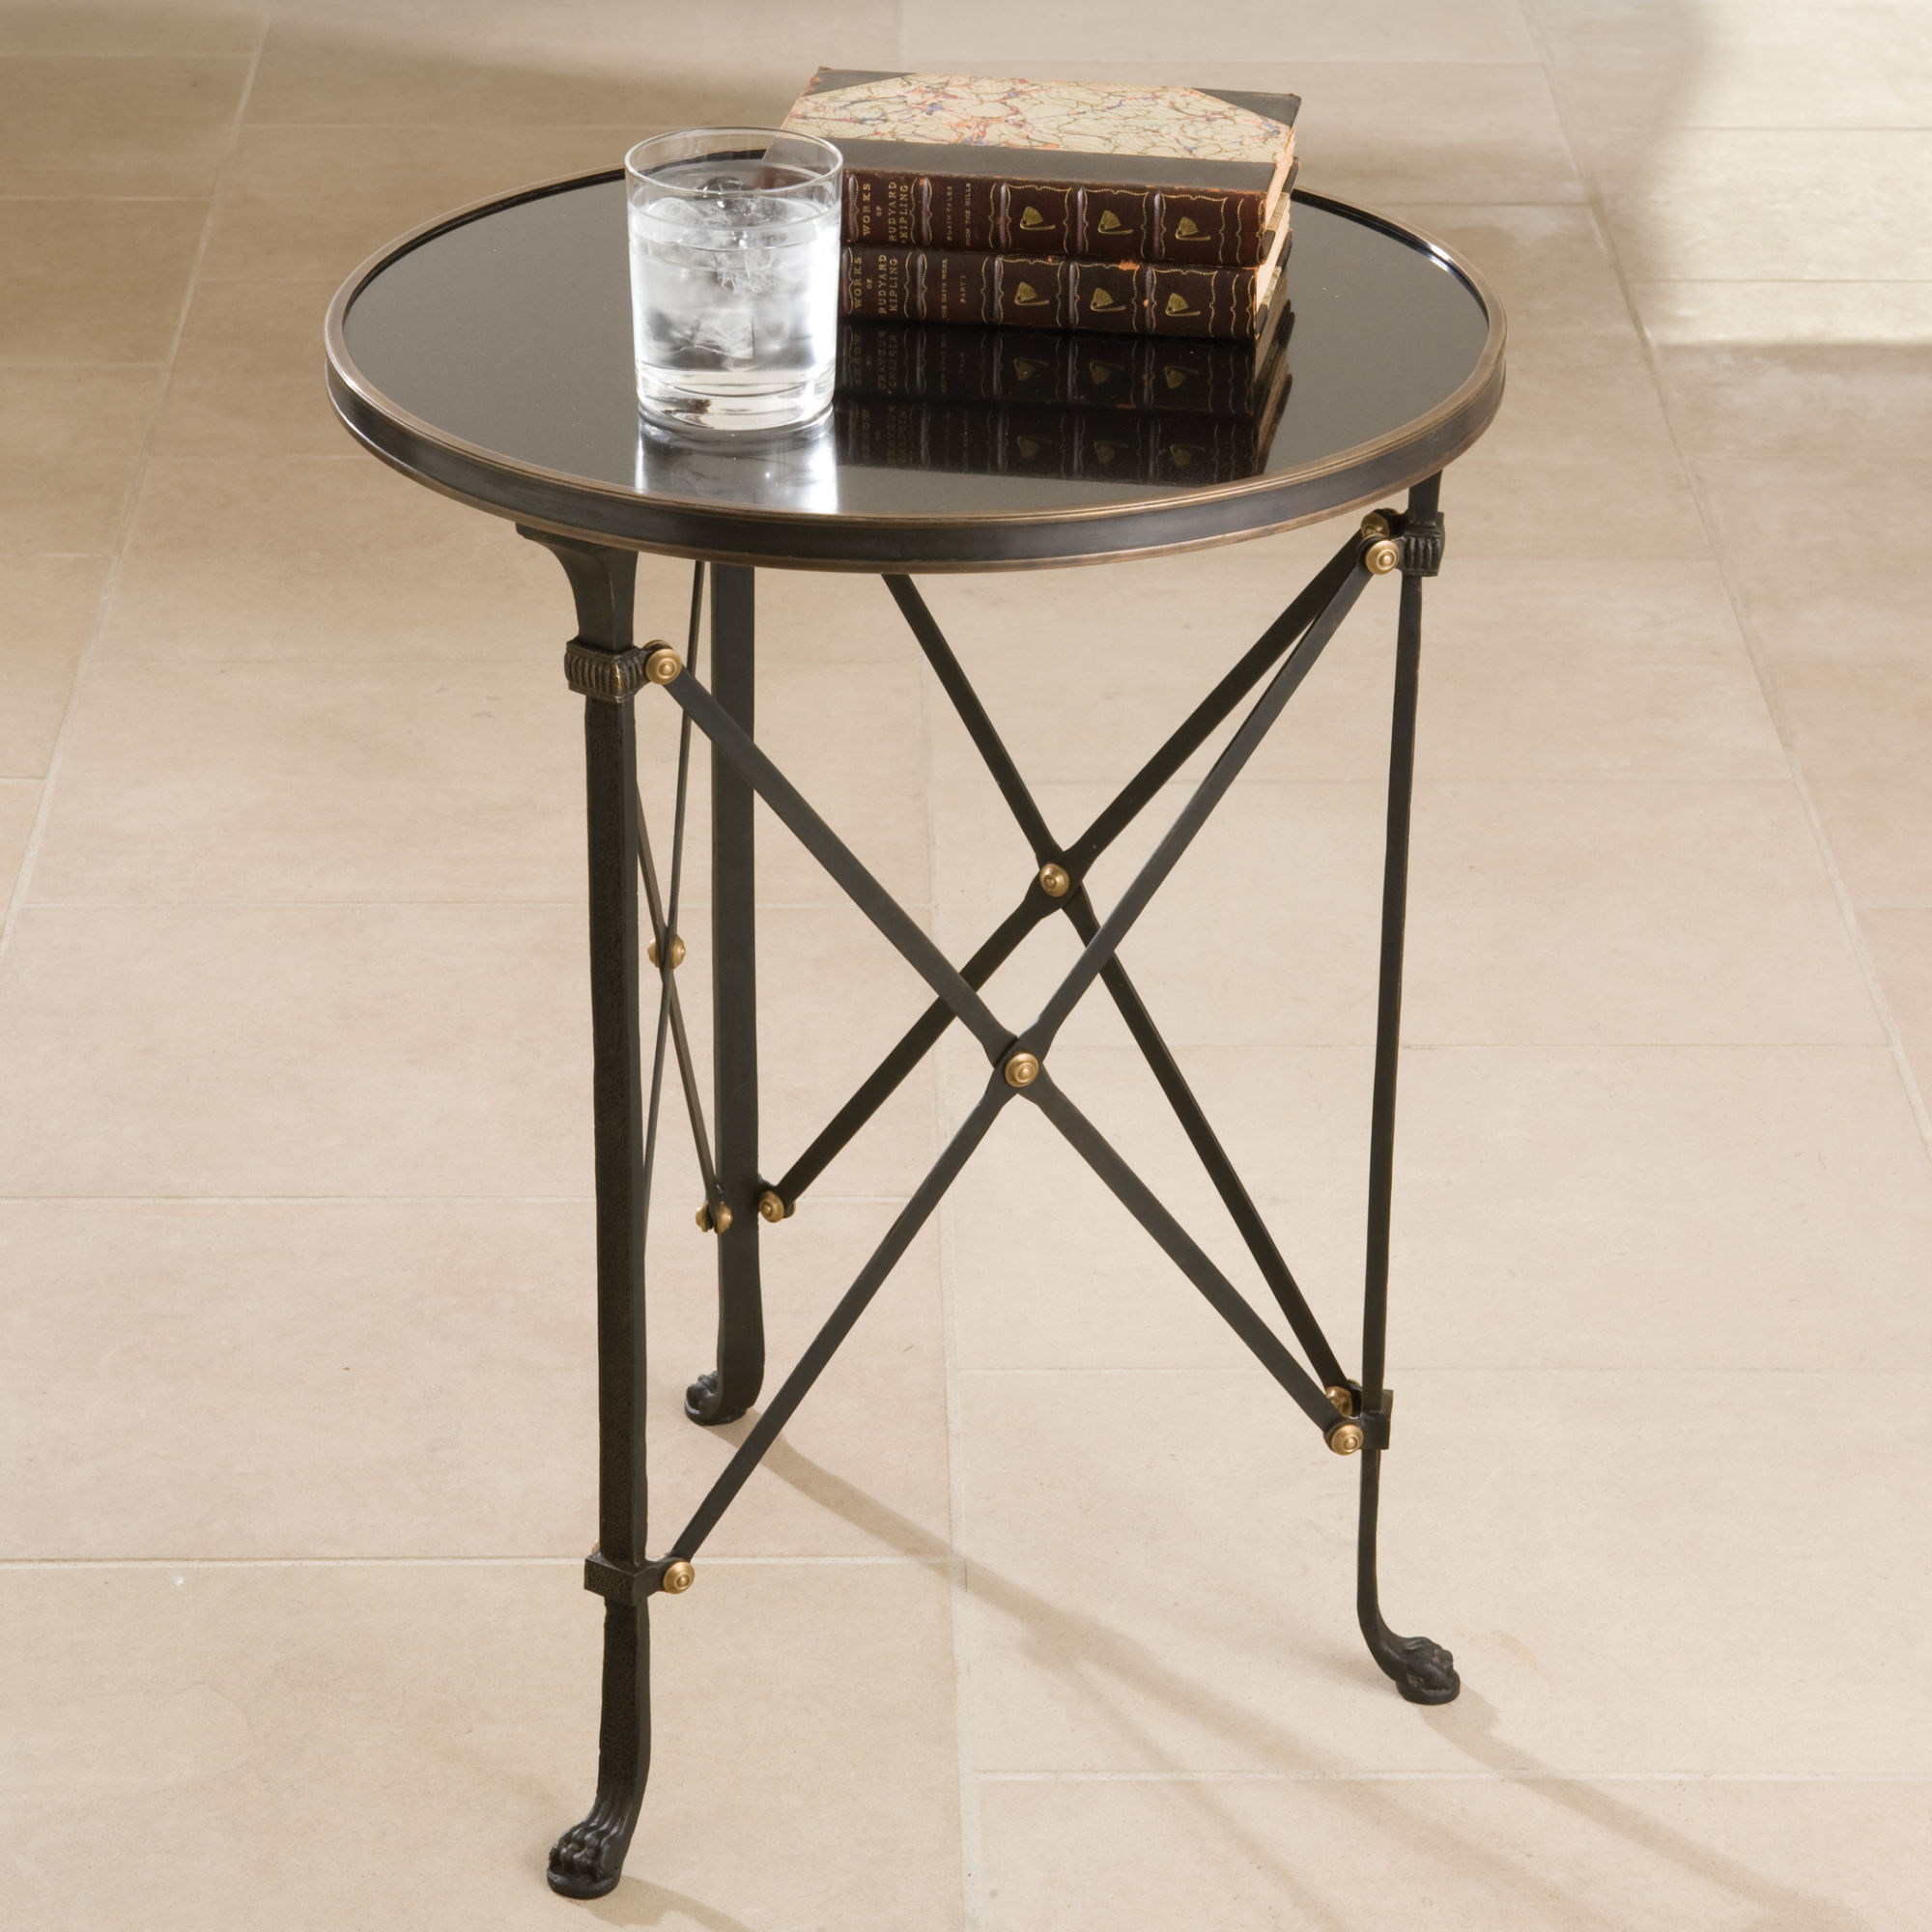 assimilate your house with mirrored accent table gestablishment charlotte west elm stools patio end storage white entrance silver wooden legs unfinished furniture small phone gold